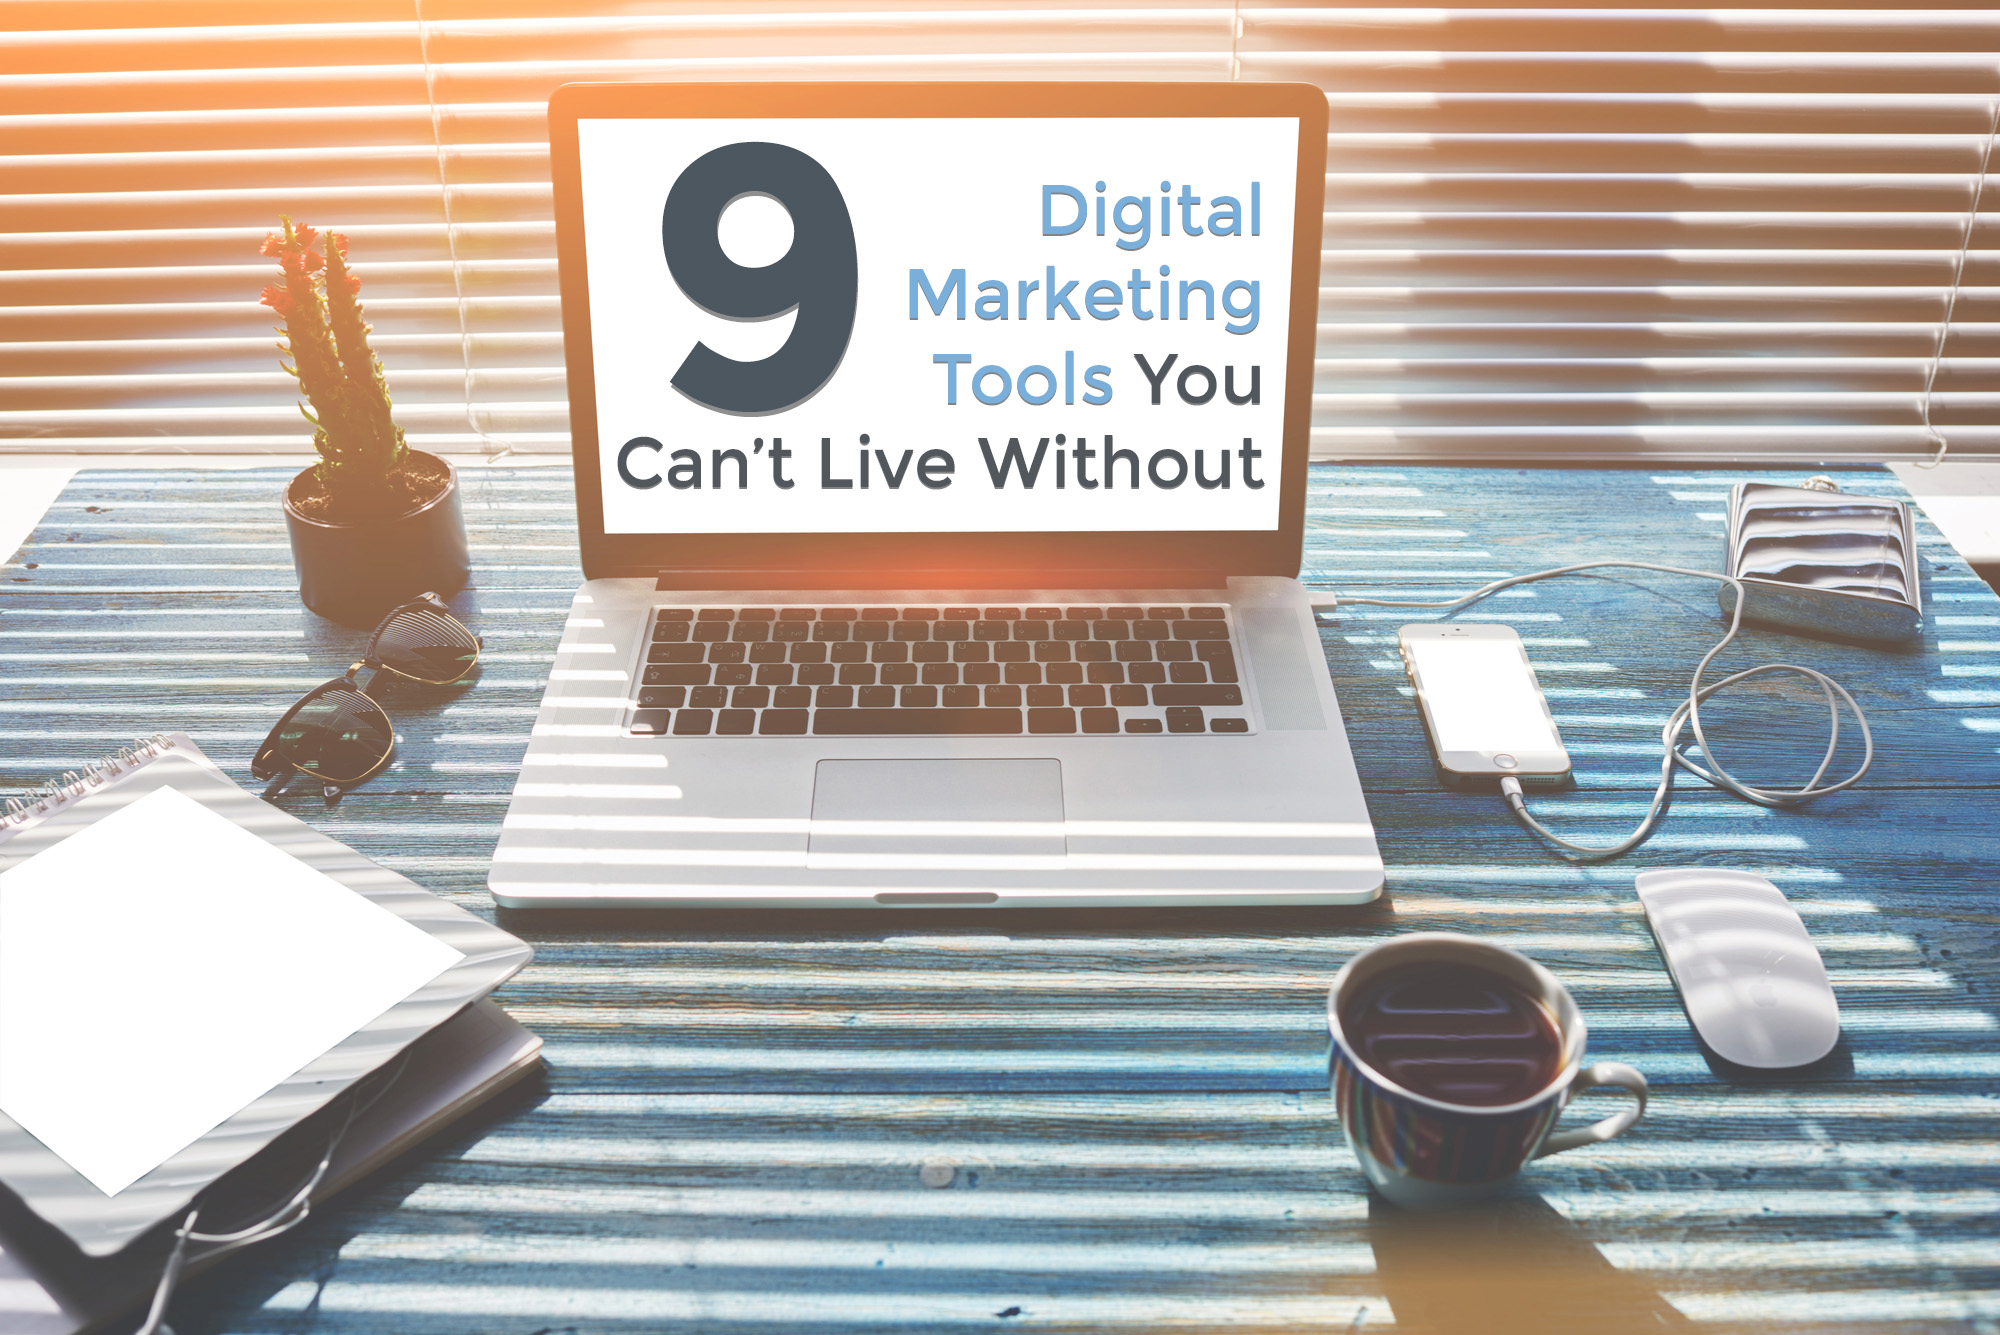 9 Digital Marketing Tools You Can't Live Without by @SEOBrock